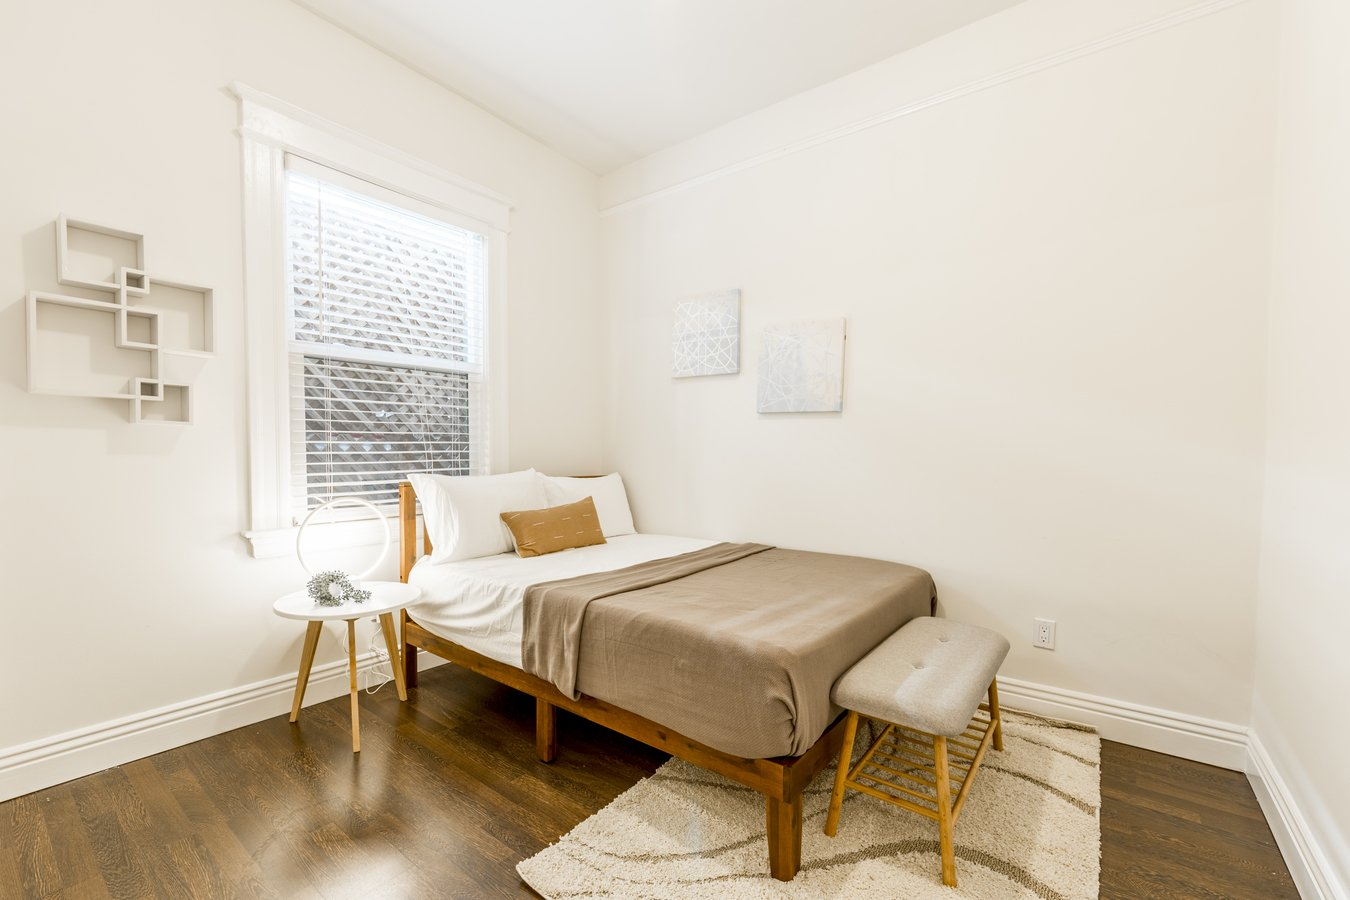 1 Bedroom 1 Bathroom House for rent at Vallejo St & Stockton St Coliving in San Francisco, CA